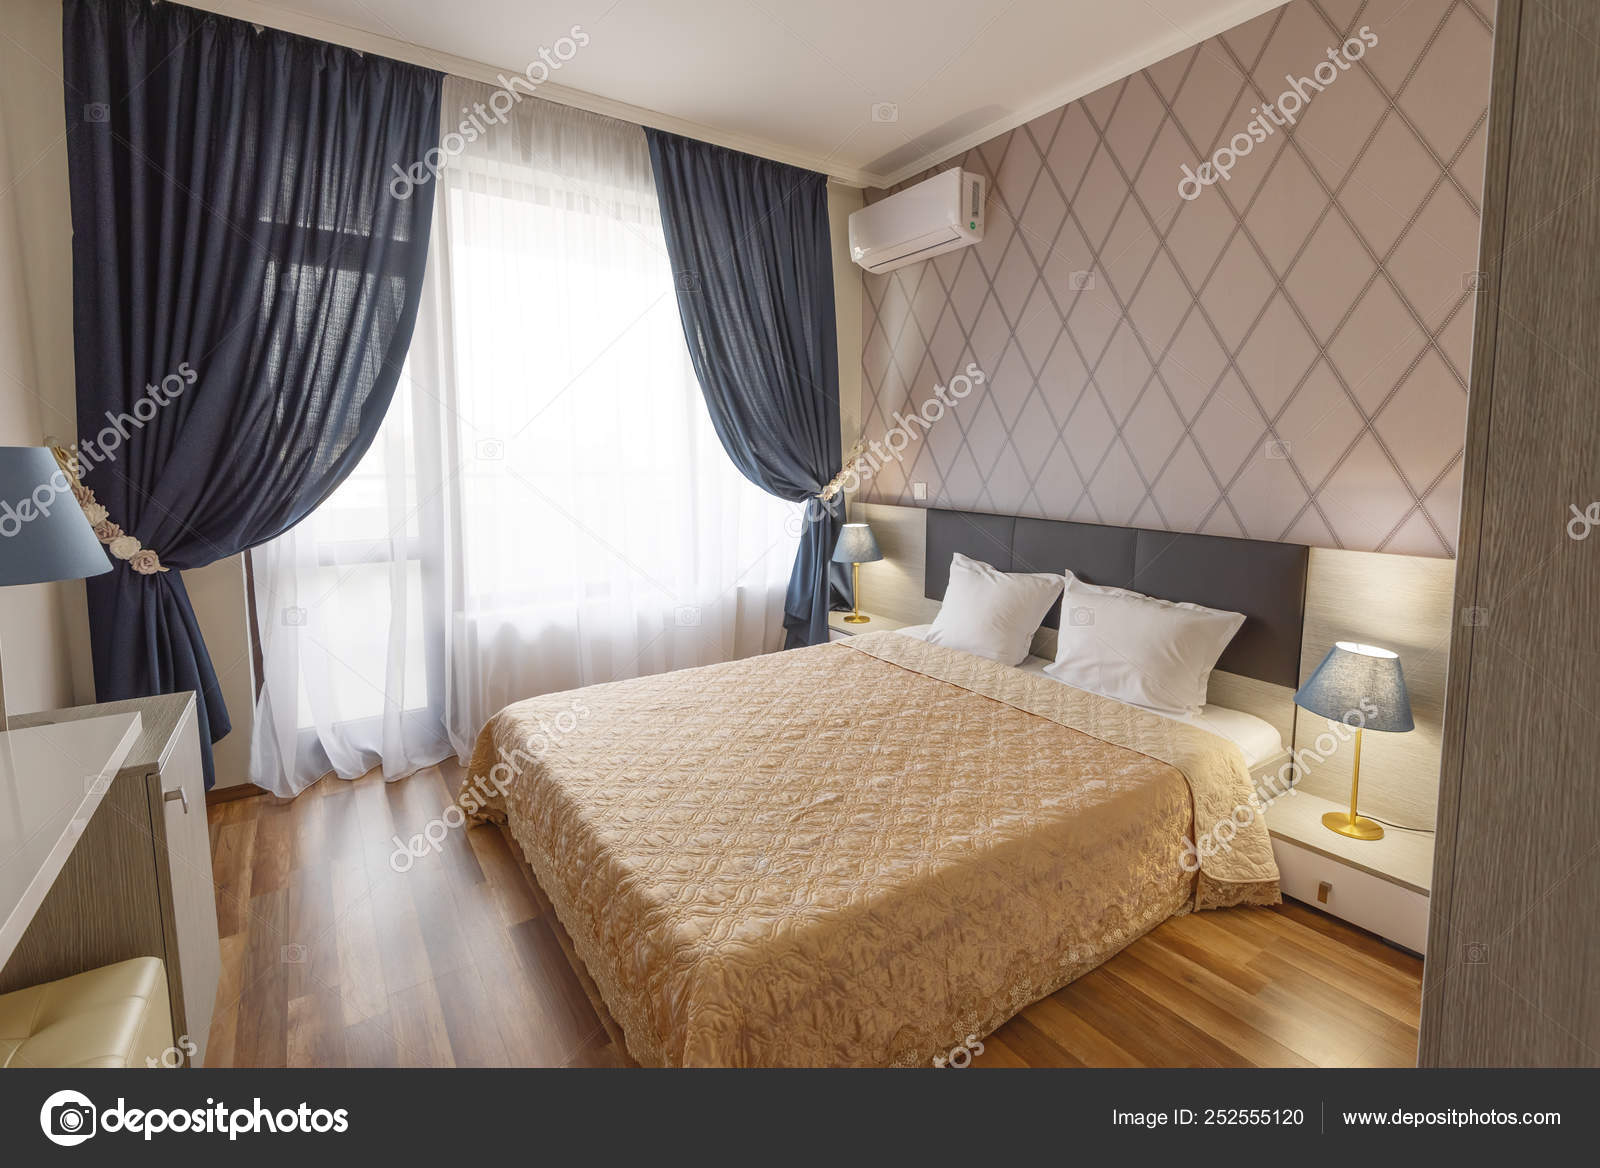 Interior Of Modern Bedroom With Cozy Double Bed Windows With Long Curtains Drapery And Sheers Interior Photography Stock Photo Image By C Snj Abv Bg 252555120